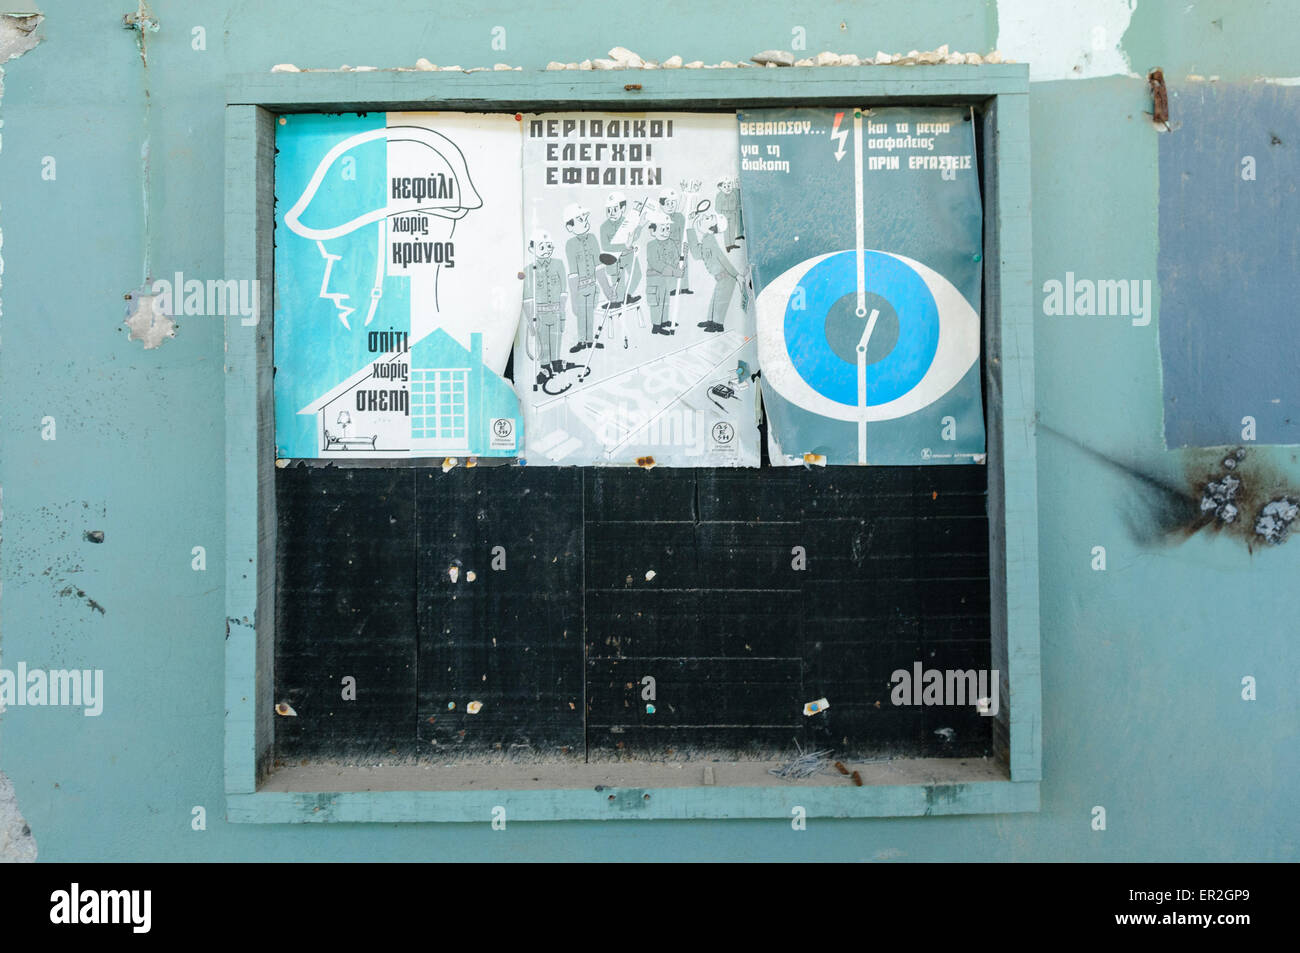 Sign inside a Greek power station warning employees about quality. - Stock Image